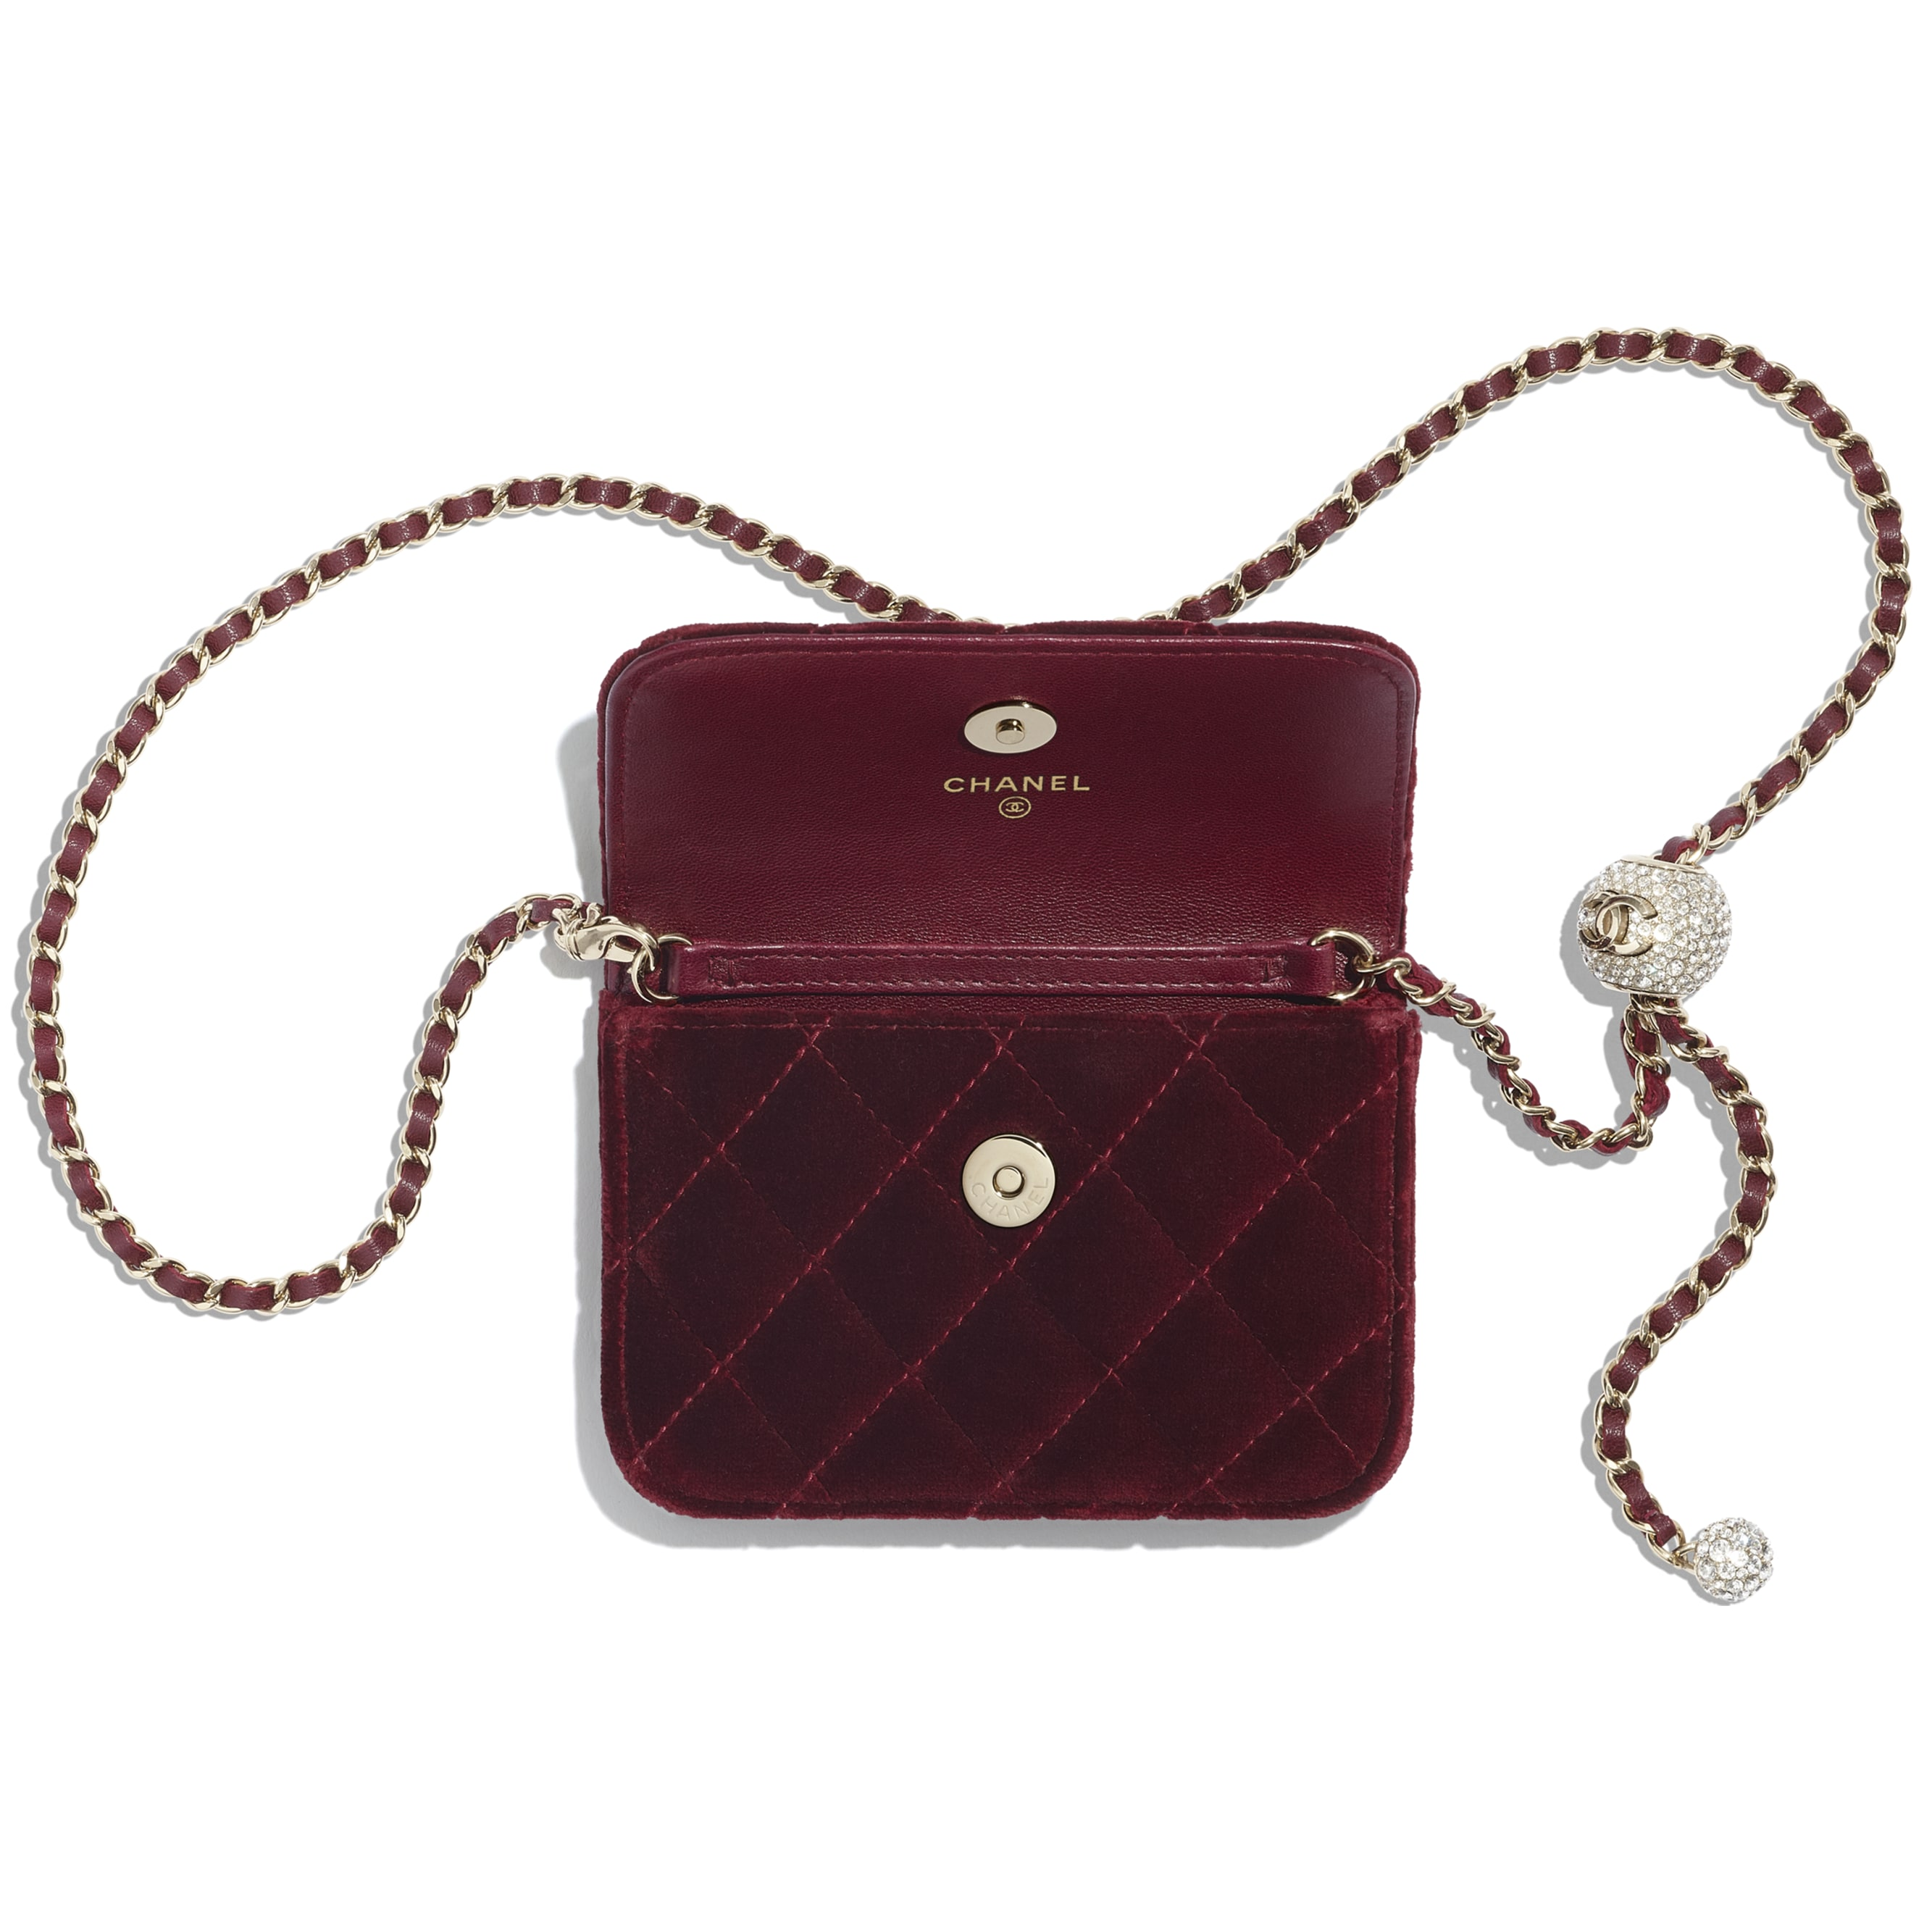 Clutch With Chain - Burgundy - Velvet, Diamanté & Gold-Tone Metal - CHANEL - Alternative view - see standard sized version